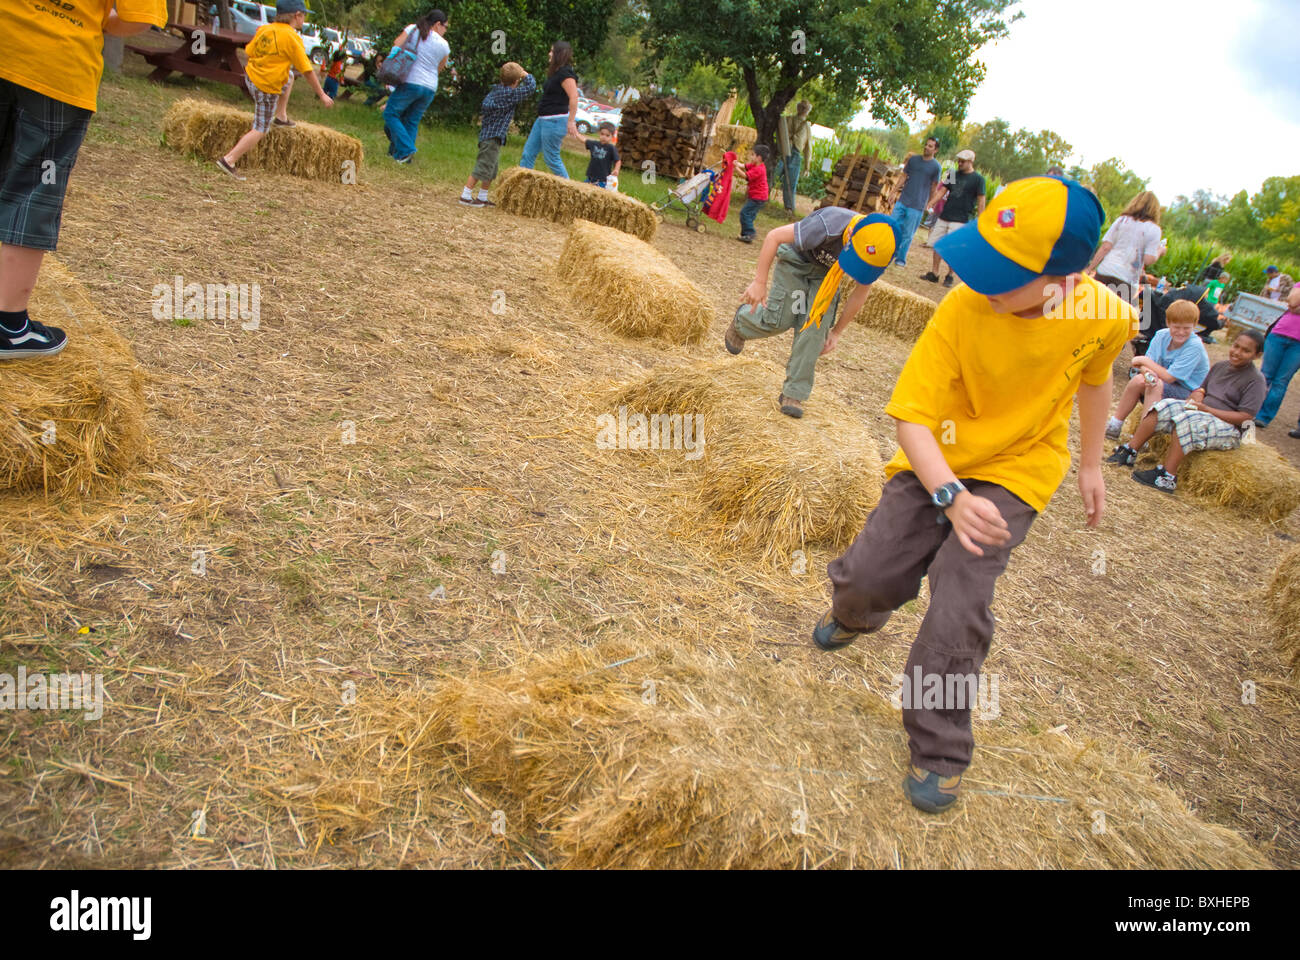 Cub Scouts jumping on bales of hay on a farm Stock Photo